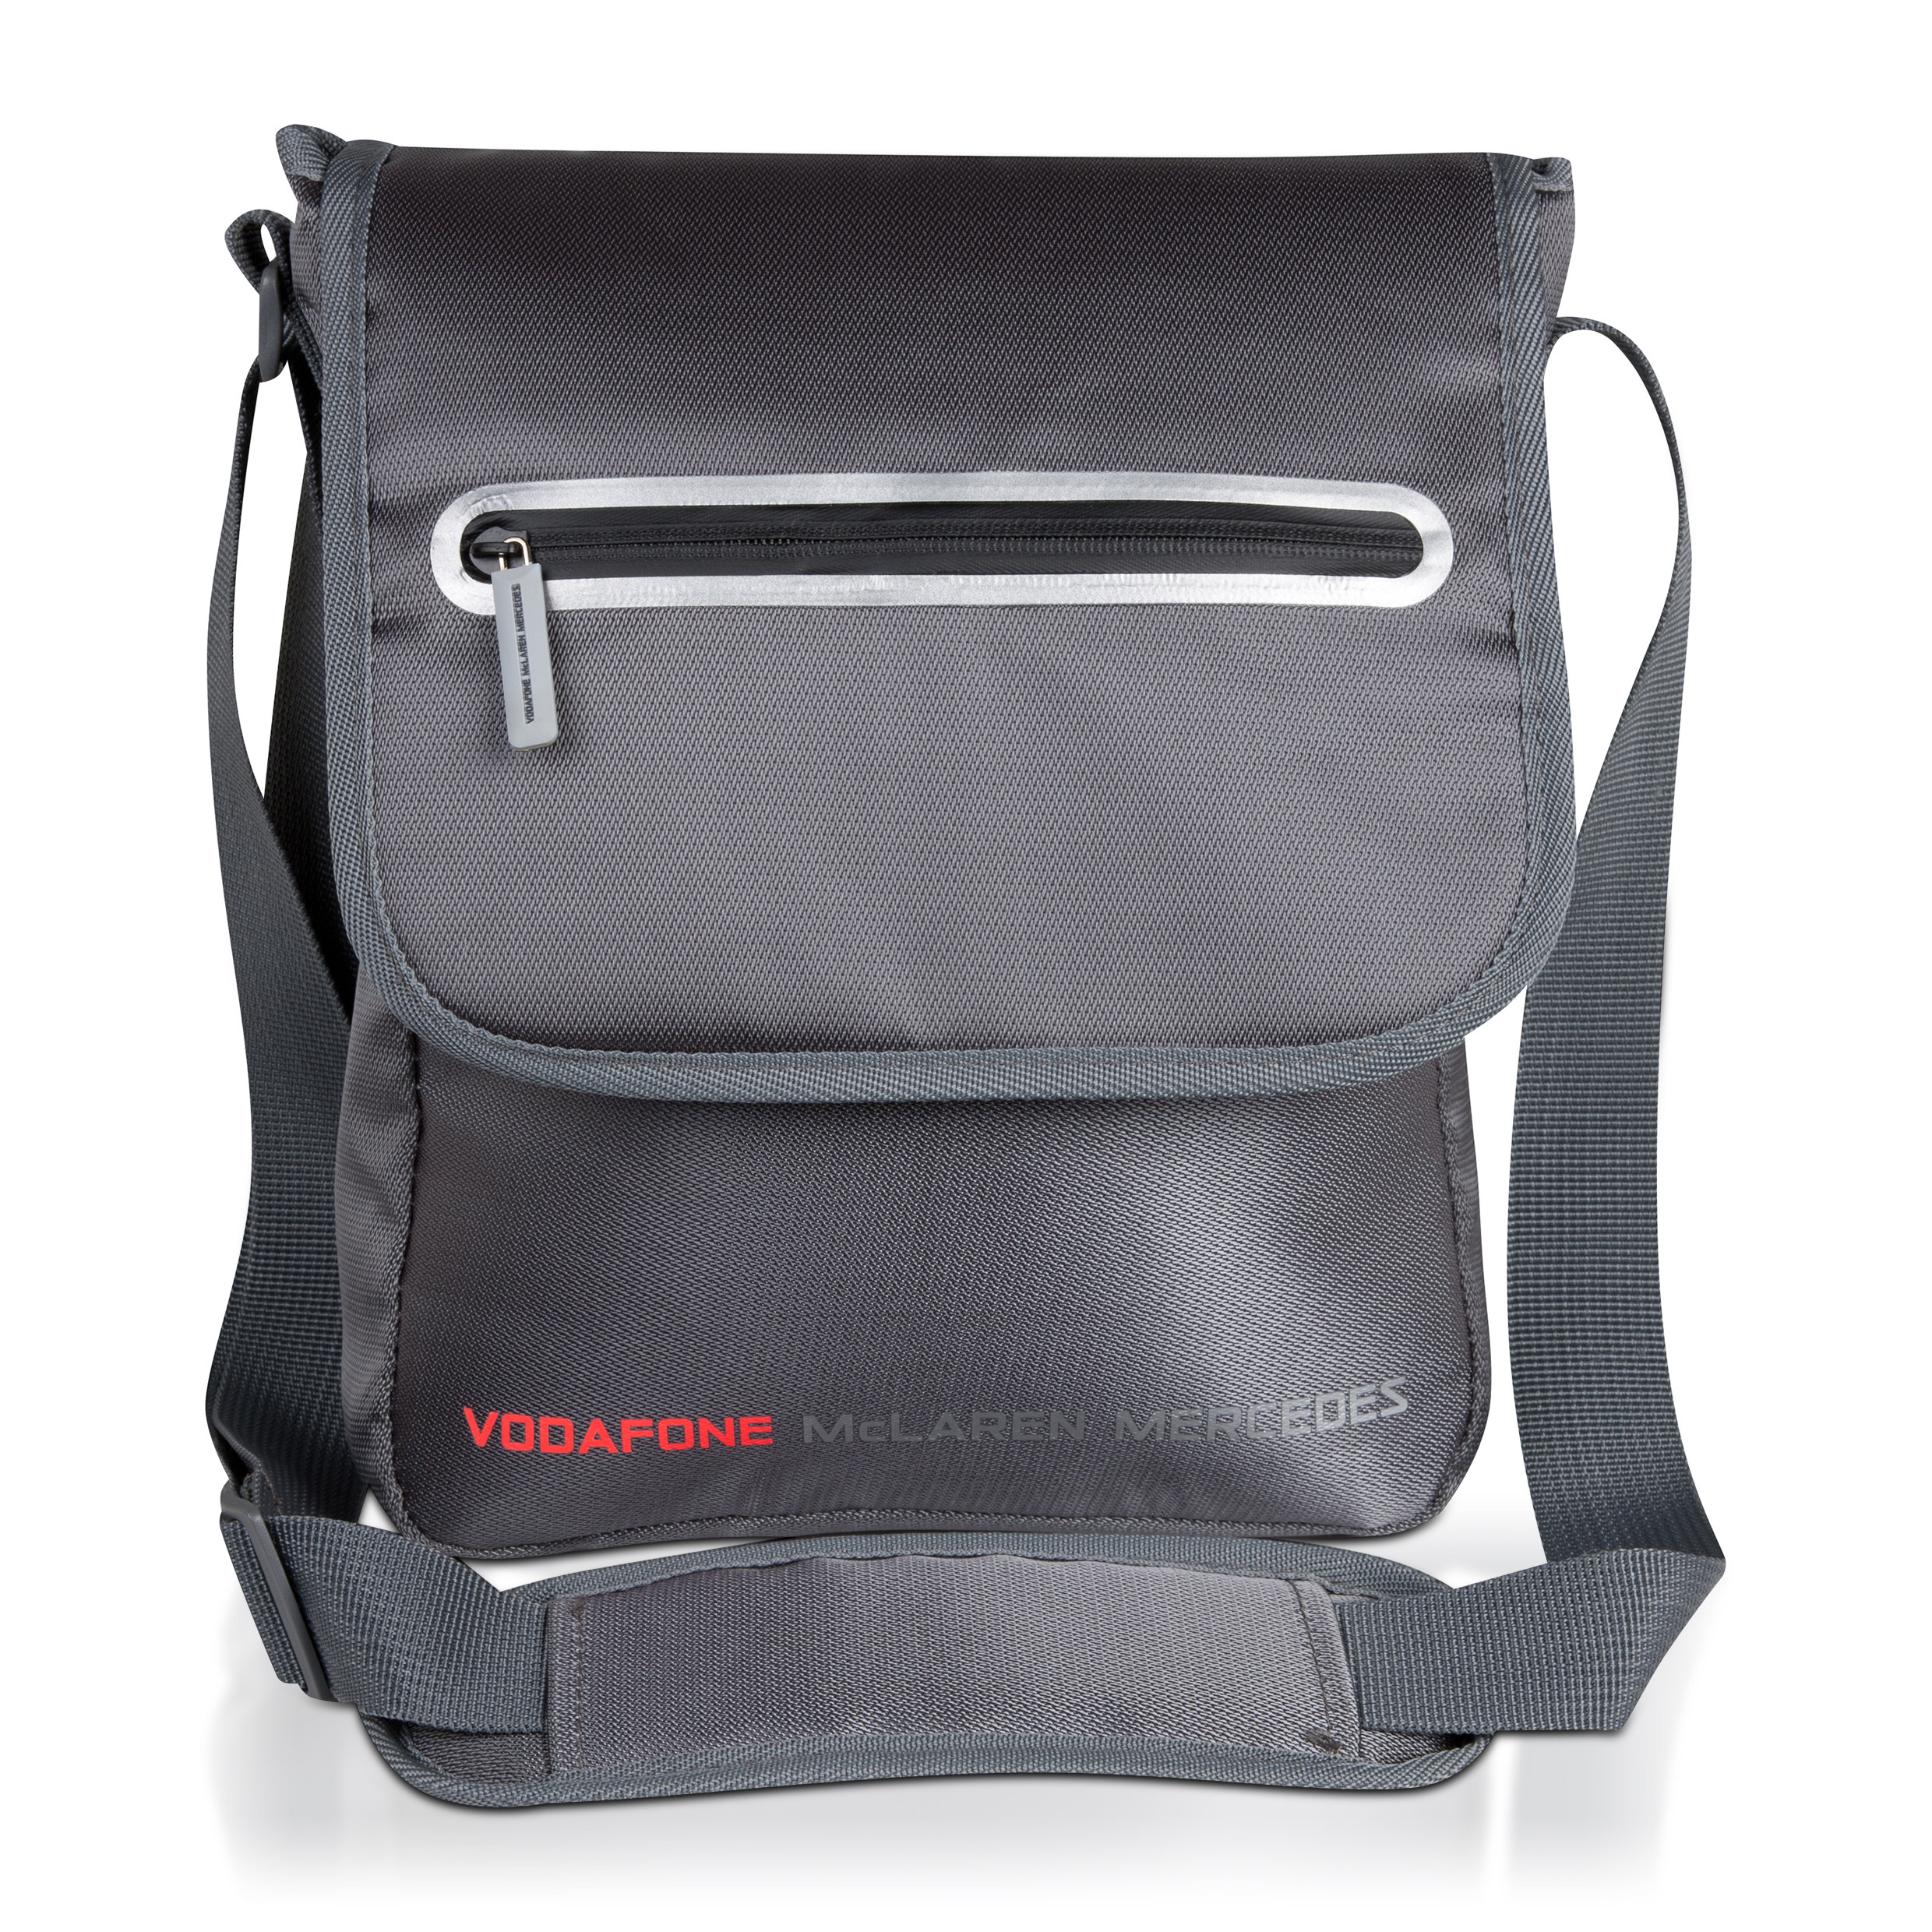 Vodafone McLaren Mercedes Media Bag